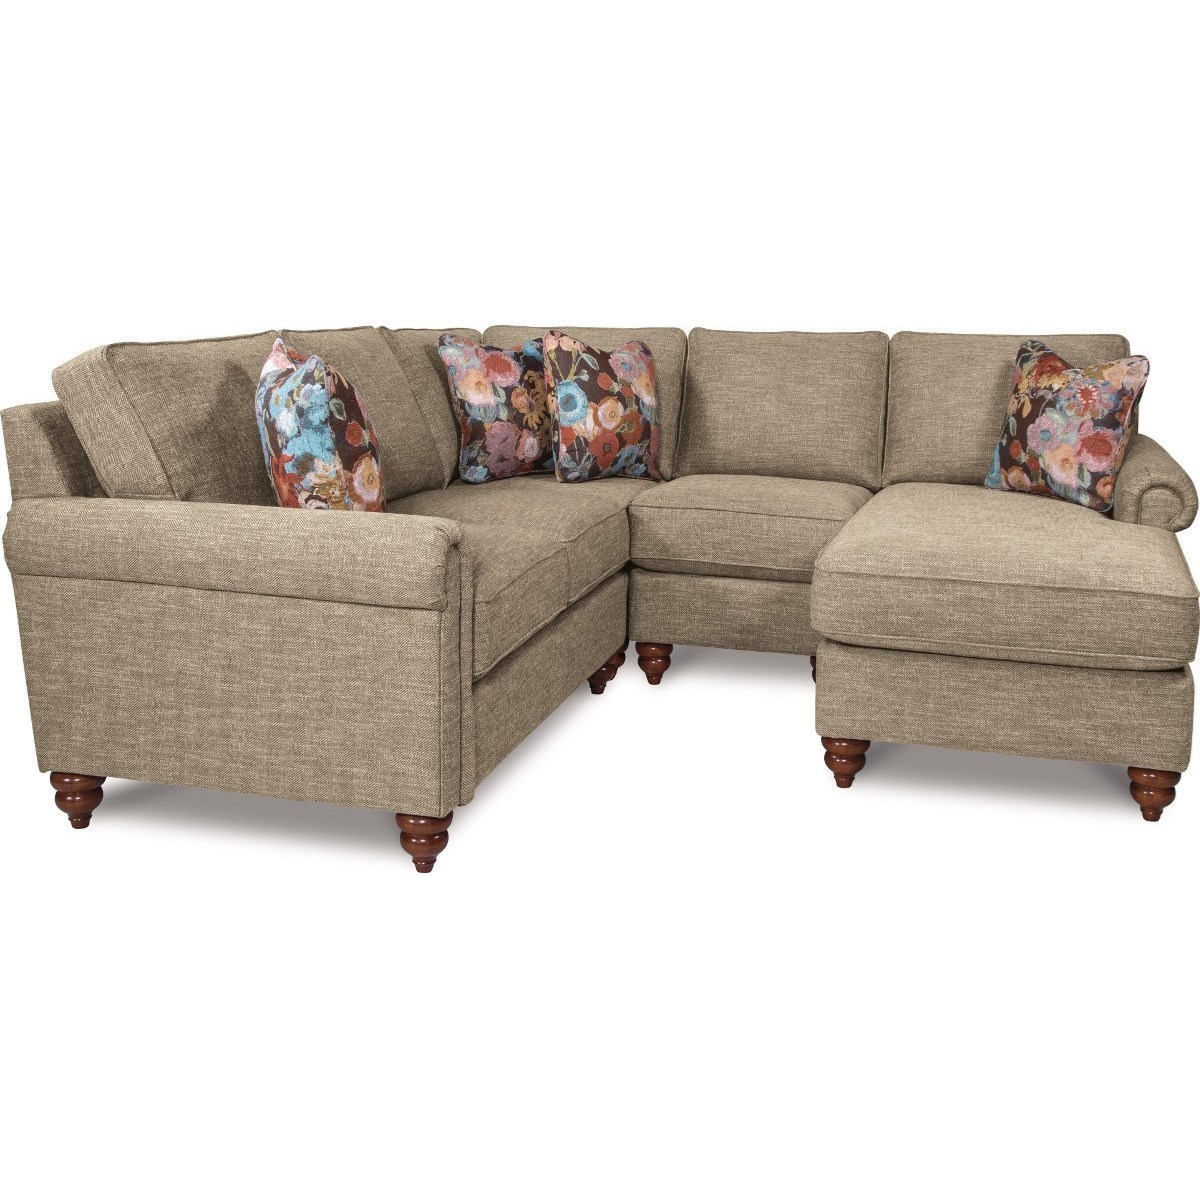 Chaise Z La Z Boy Leighton Traditional Four Piece Sectional Sofa With Left